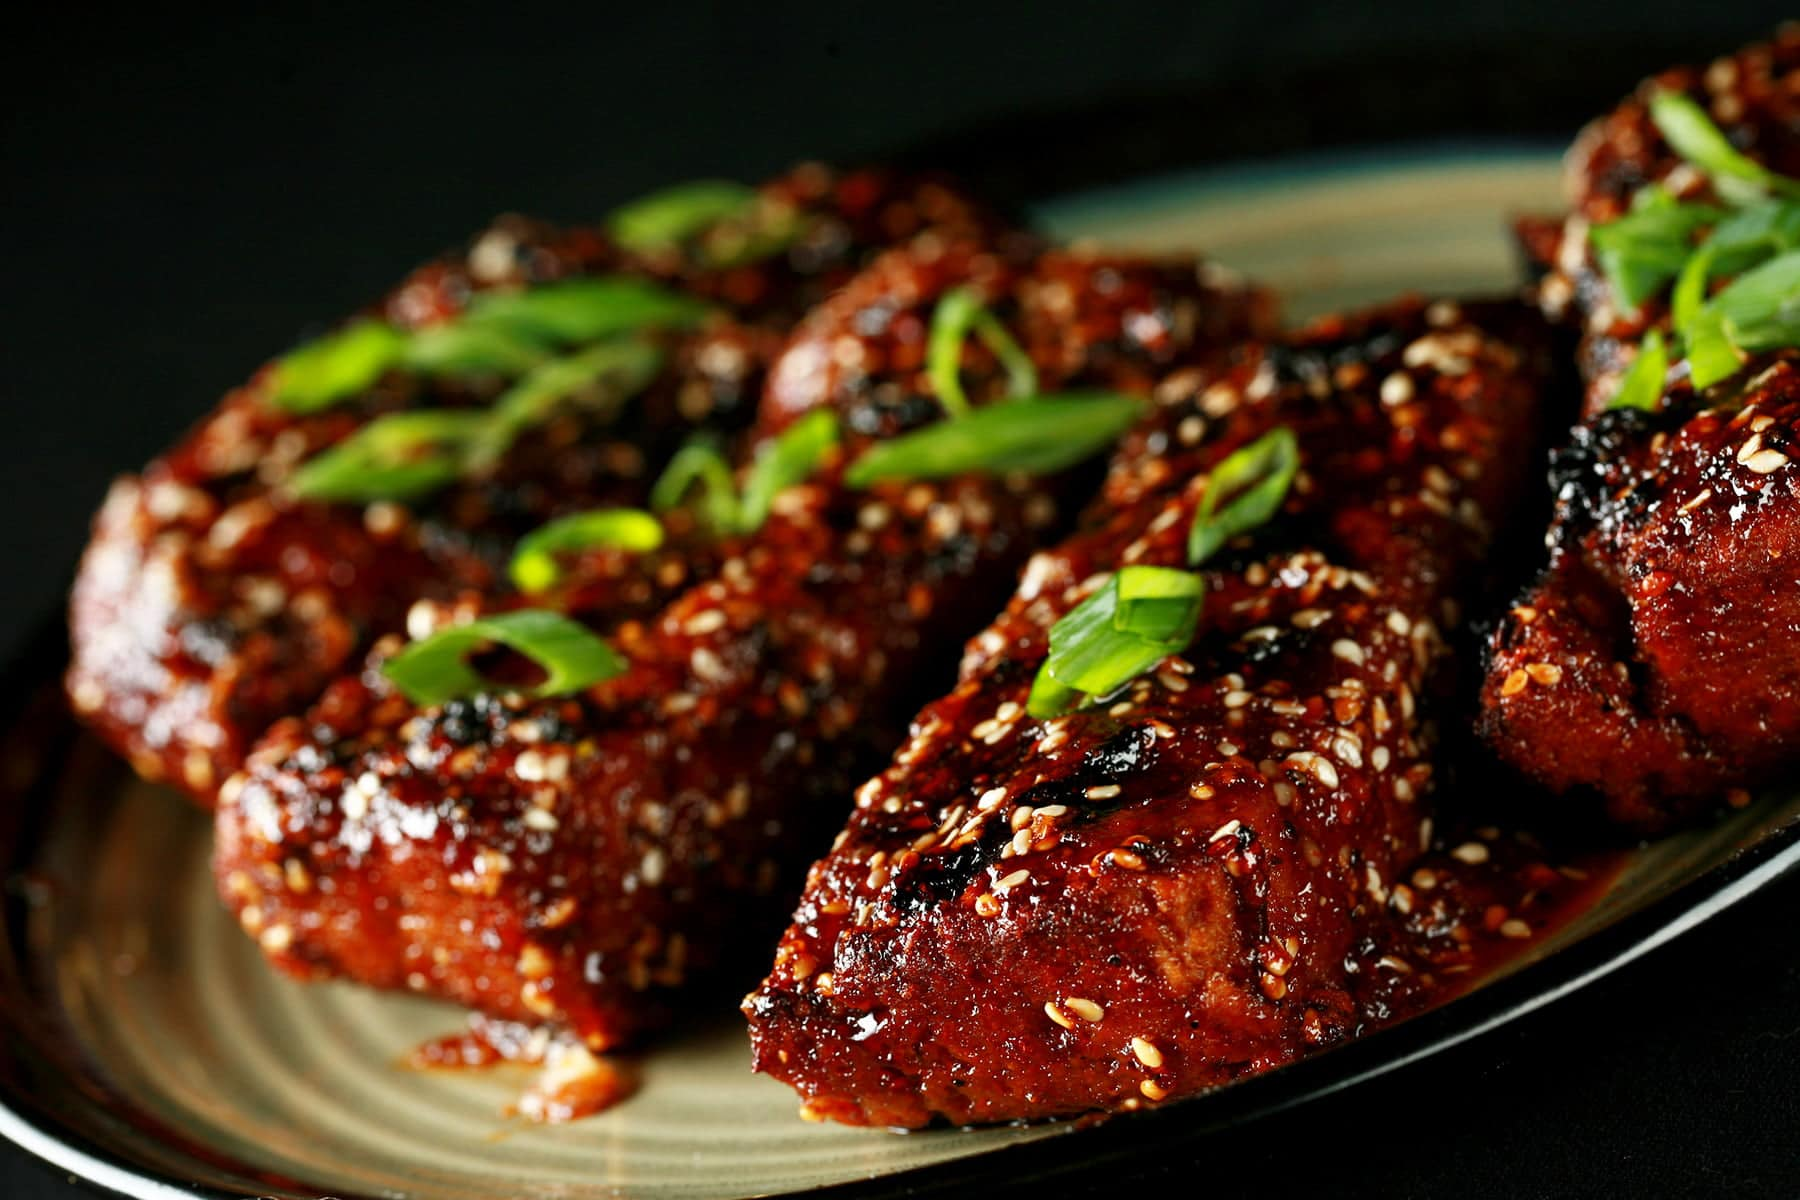 Close up photo of a plate of vegetarian boneless ribs. They're covered in a red-brown sauce, sesame seeds, and sliced green onion.